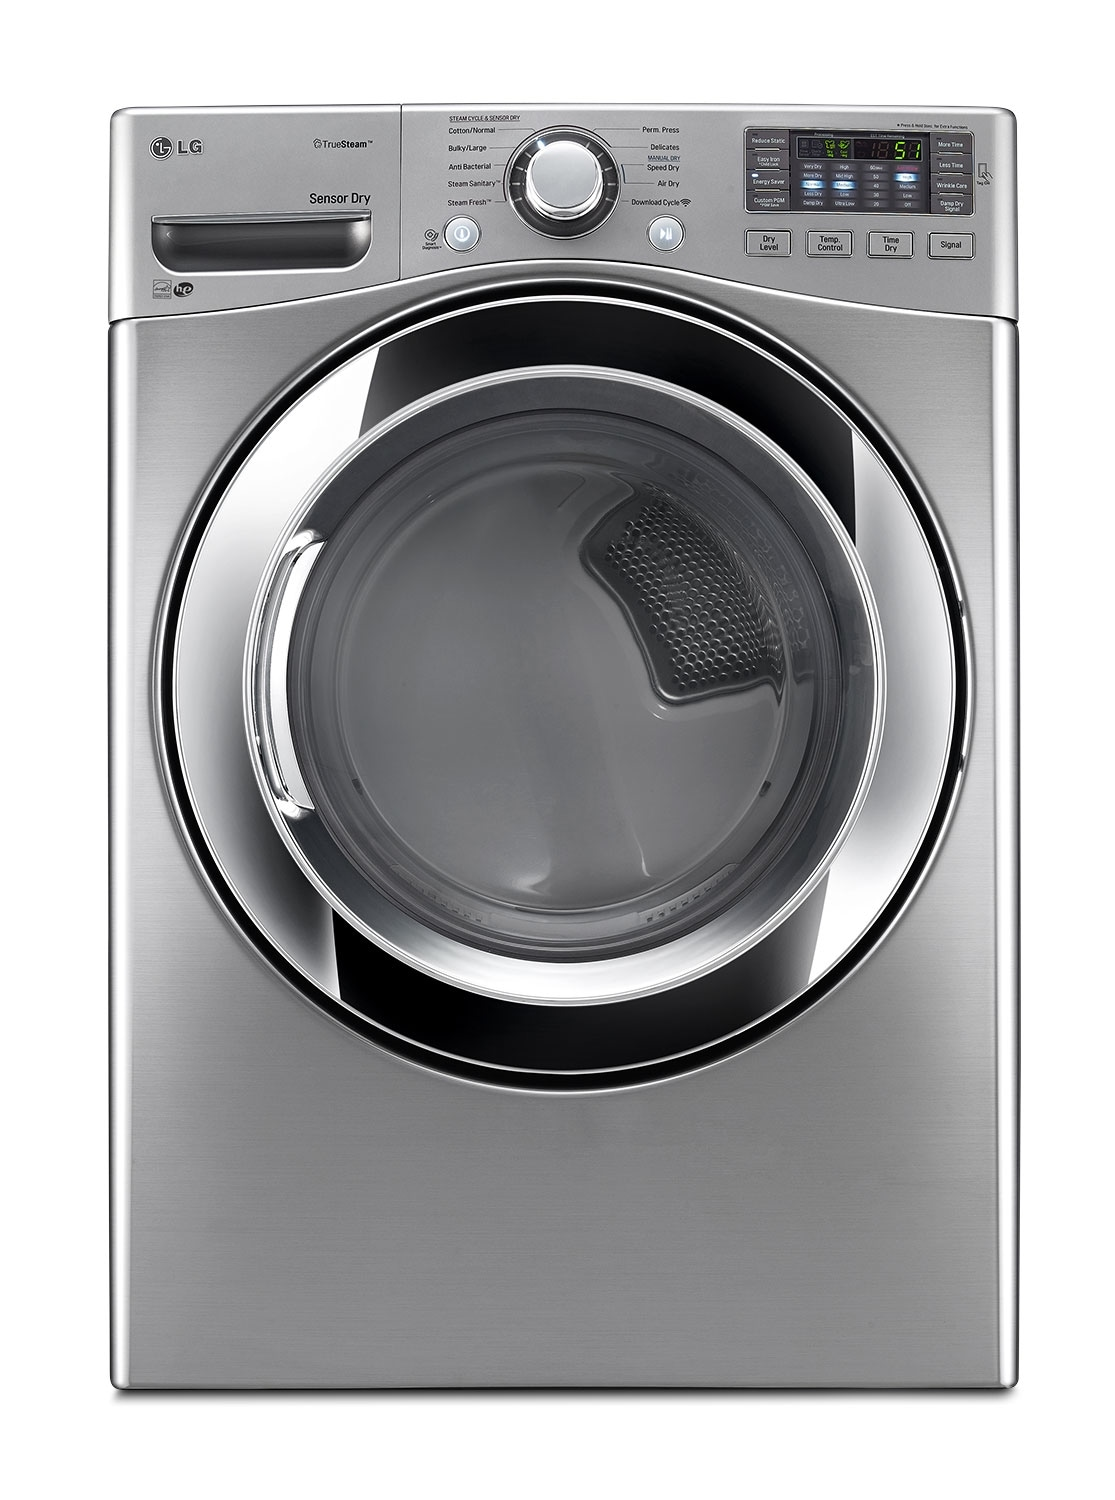 LG Graphite Steel Electric Dryer (7.4 Cu. Ft.) - DLEX3370V